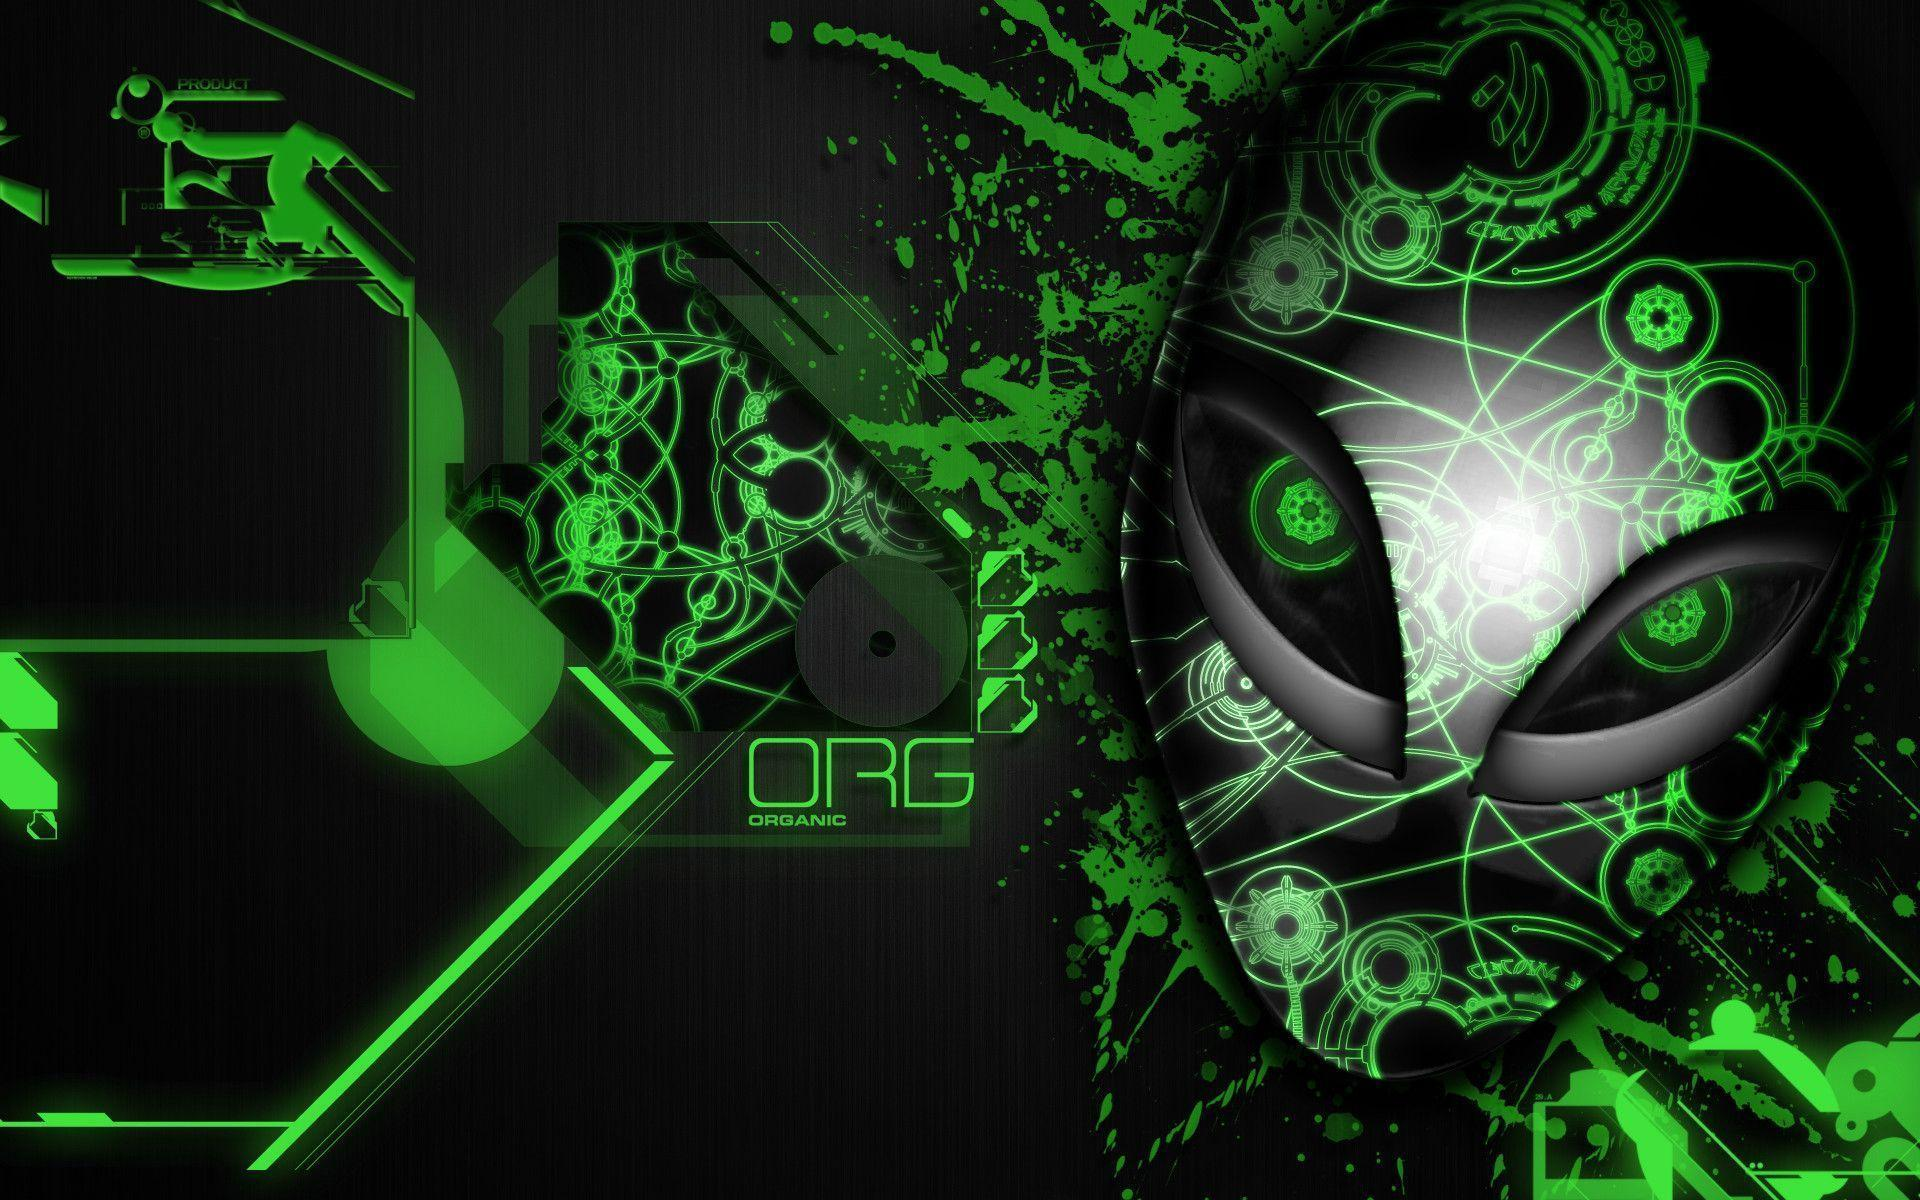 alienware wallpaper green hd - photo #23